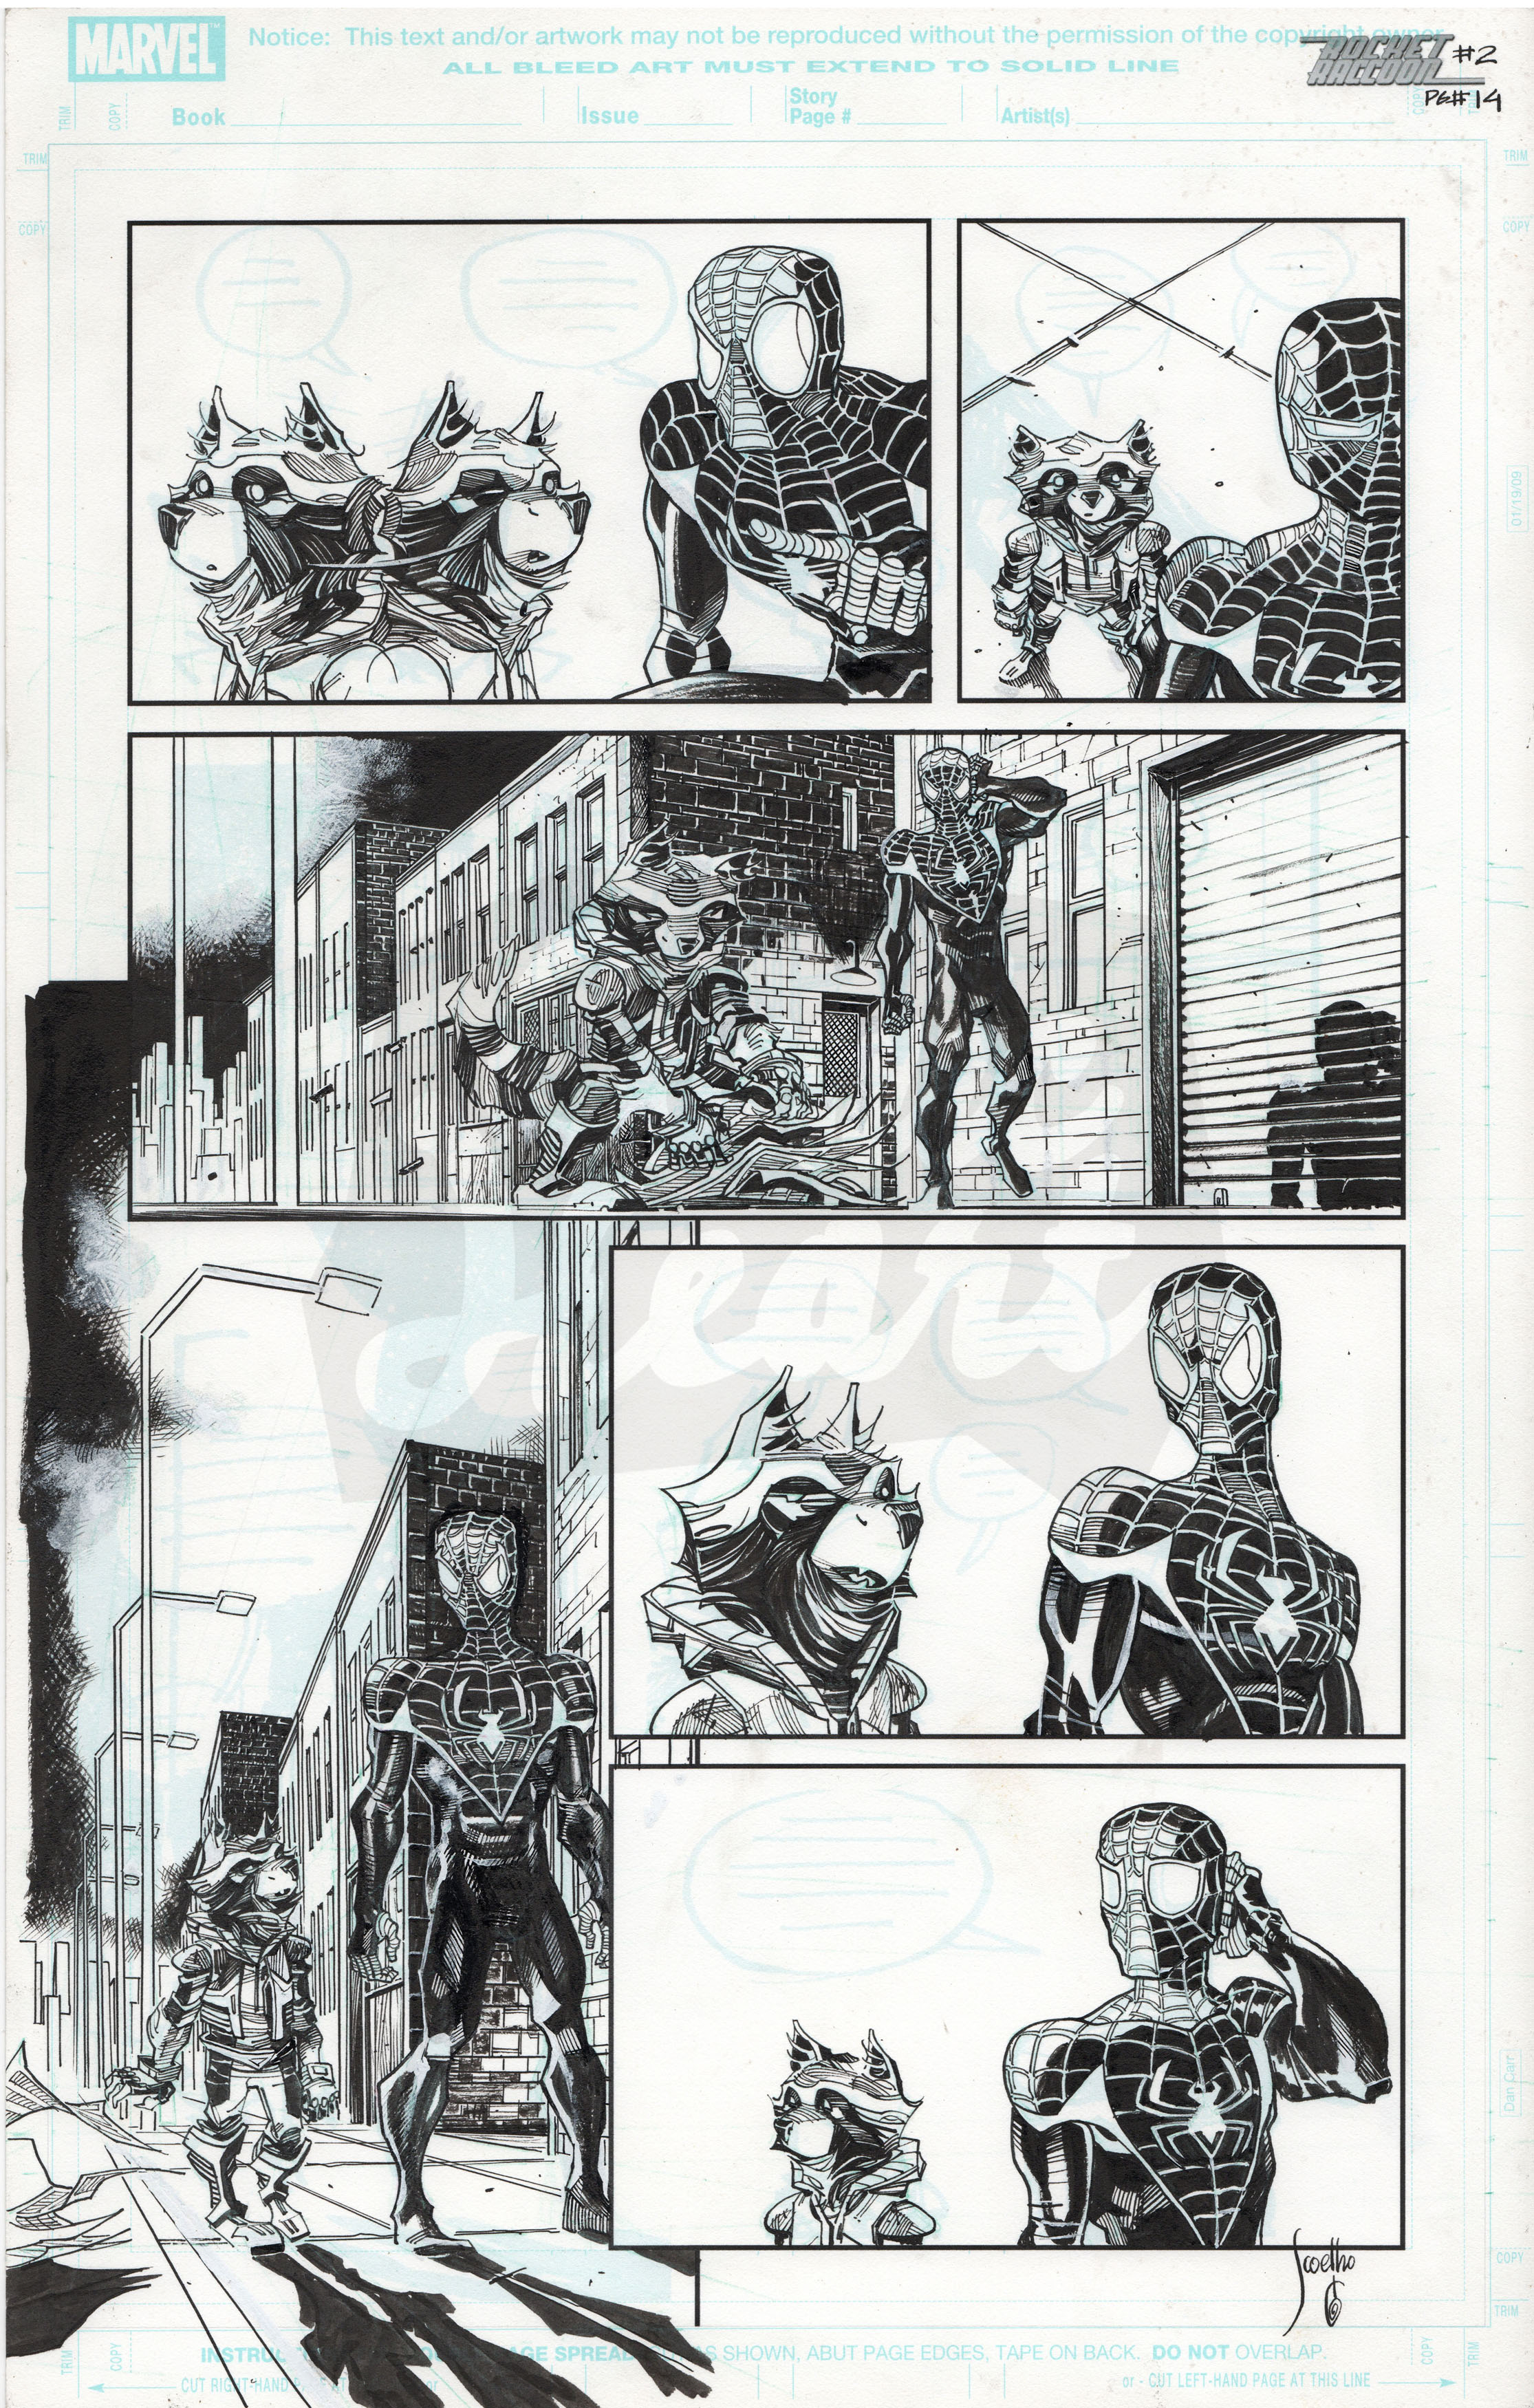 Rocket Raccoon #2, Page 14